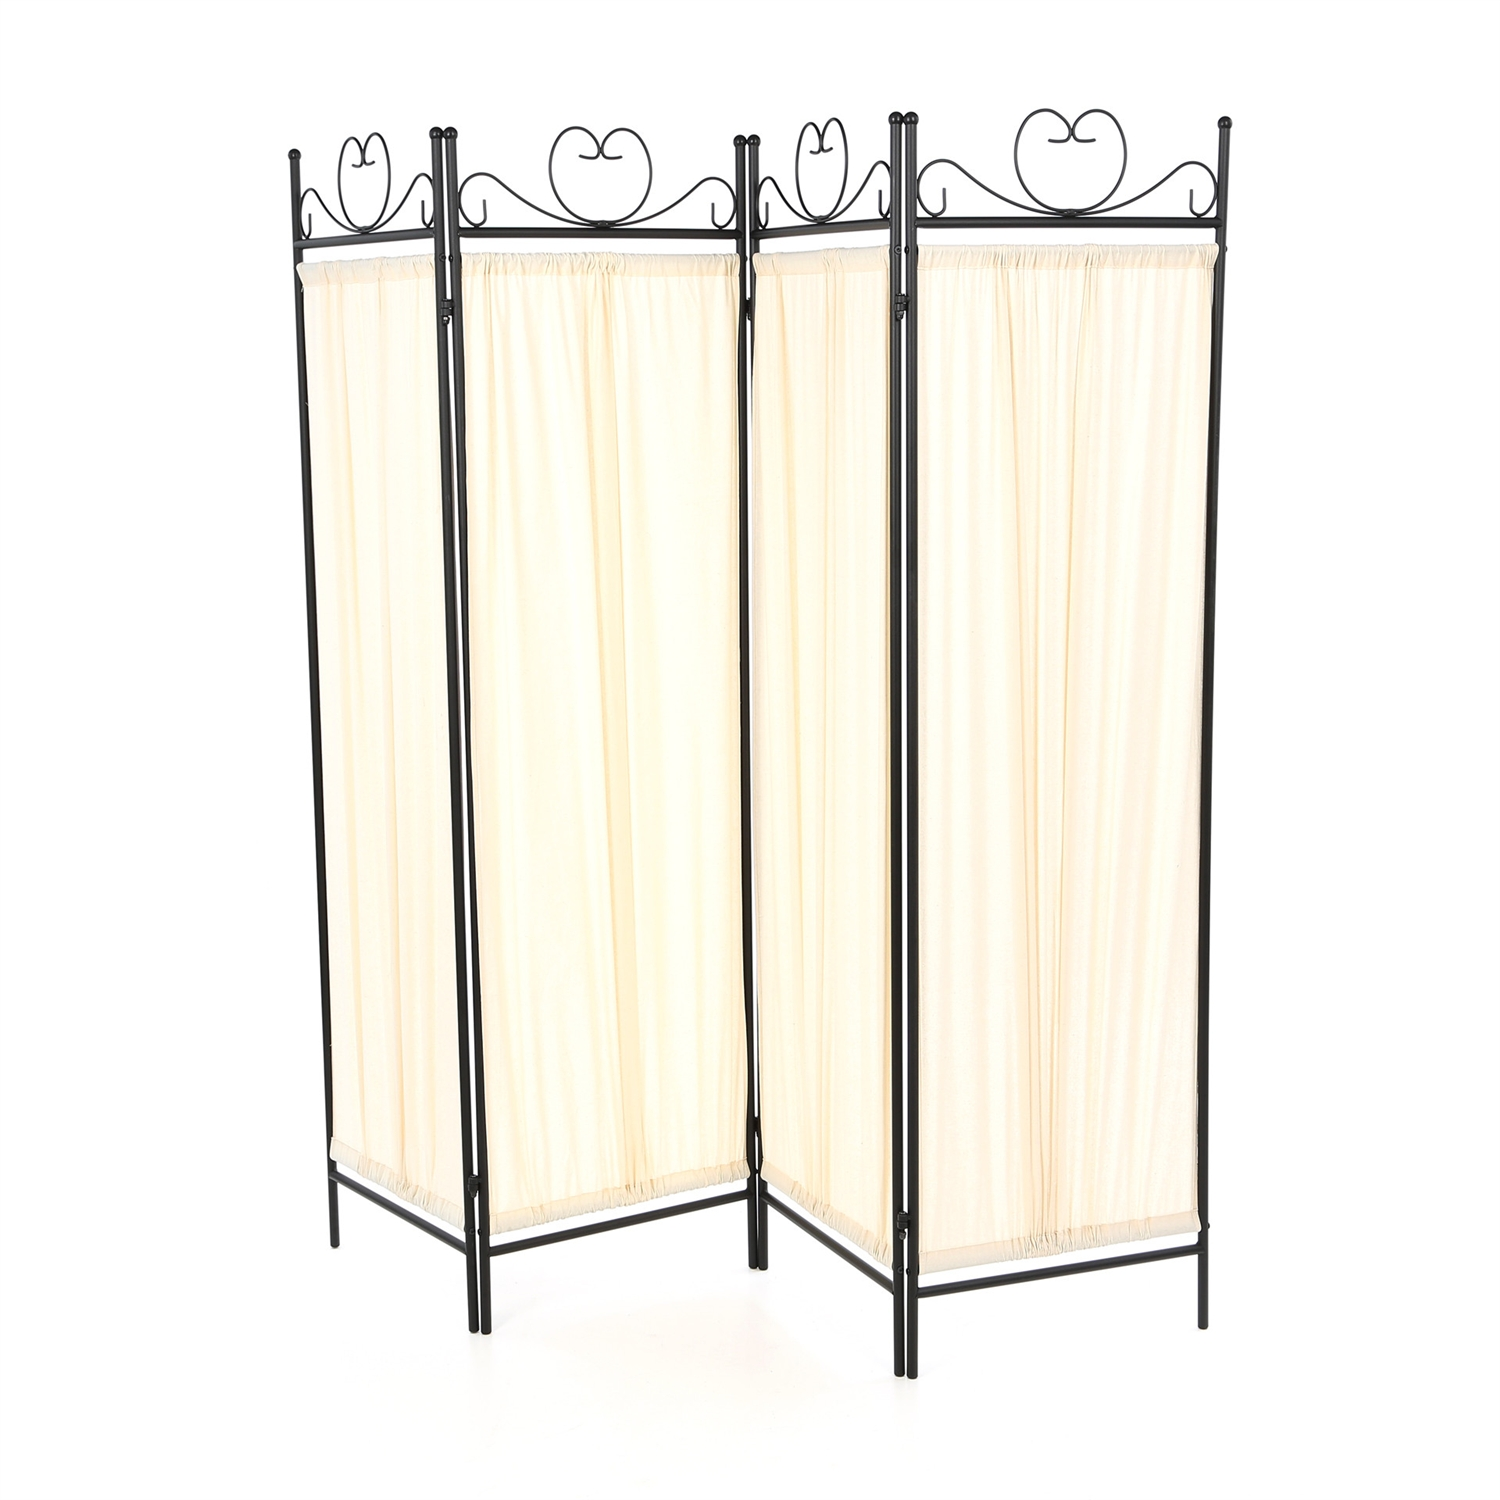 Black Metal 4-Panel Room Divider with Off-White Fabric Screen, BDF111726 :  This Black Metal 4-Panel Room Divider with Off-White Fabric Screen would be a great addition to your home. It has a metal black verde finish and butterfly decor. Product Type: Folding; Style: Traditional; Color: 1: Black; Color: 2: White; Country of Manufacture: Malaysia.